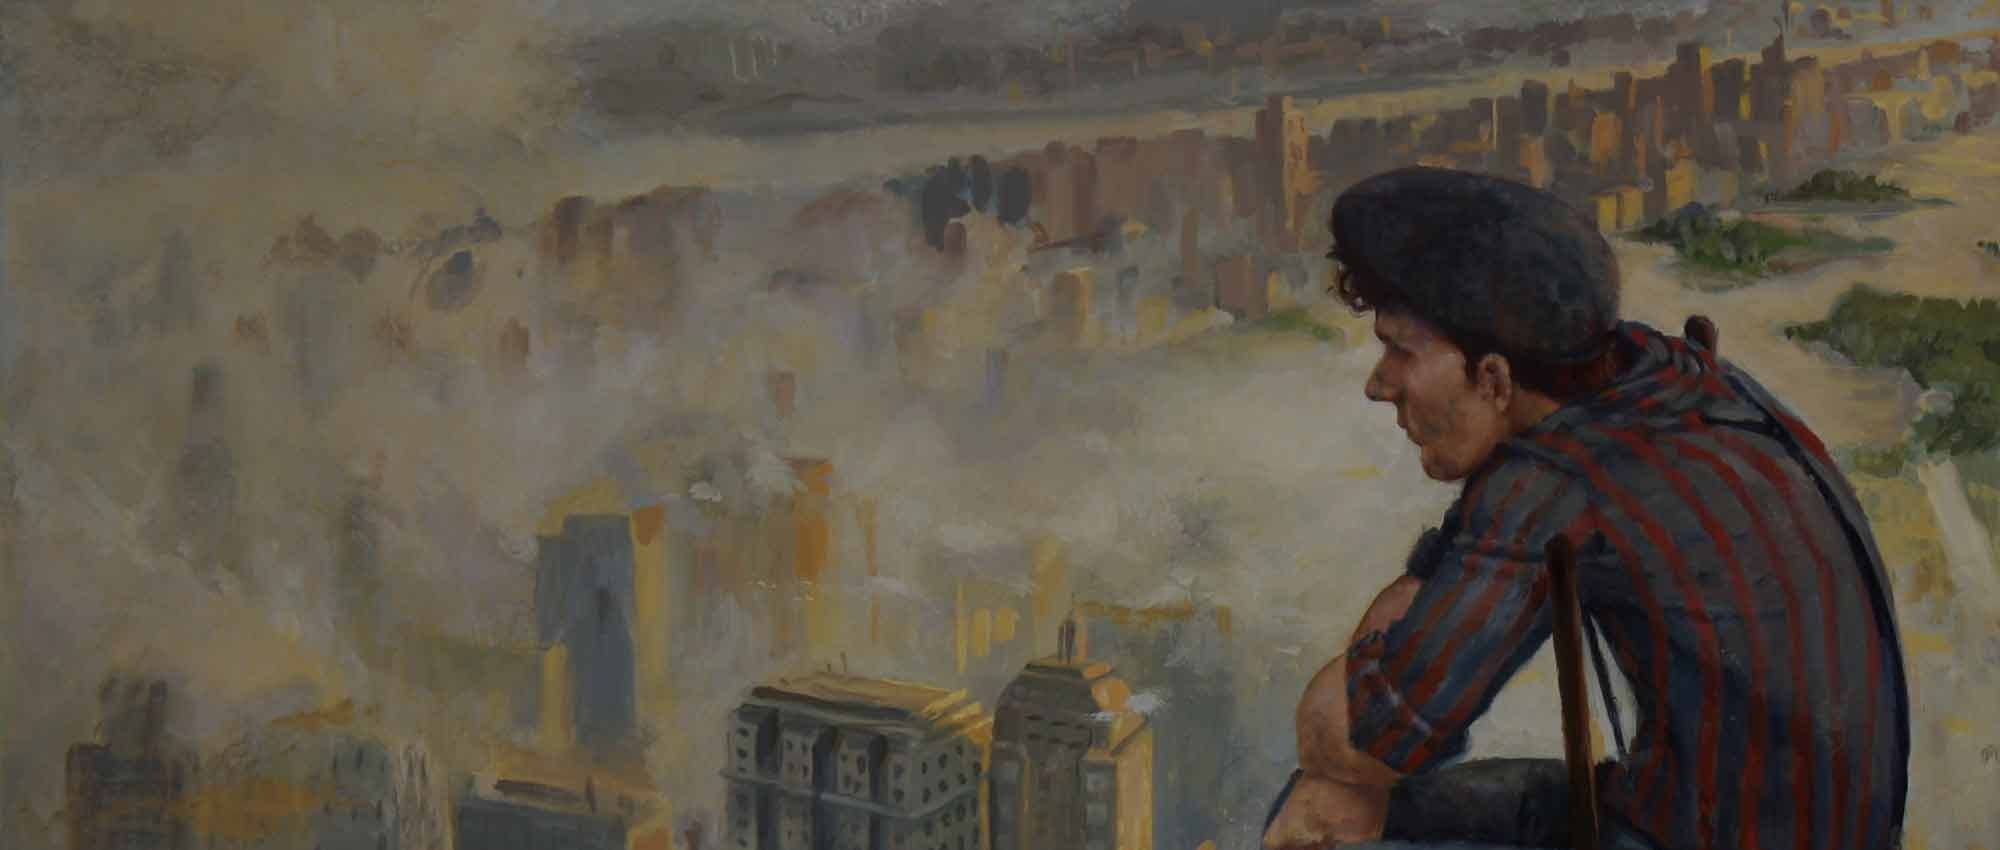 Man sitting on ladder above new york sky scrapers high up looking out, escape - Surreal Magic Realism Artwork by Fine Artist Nico